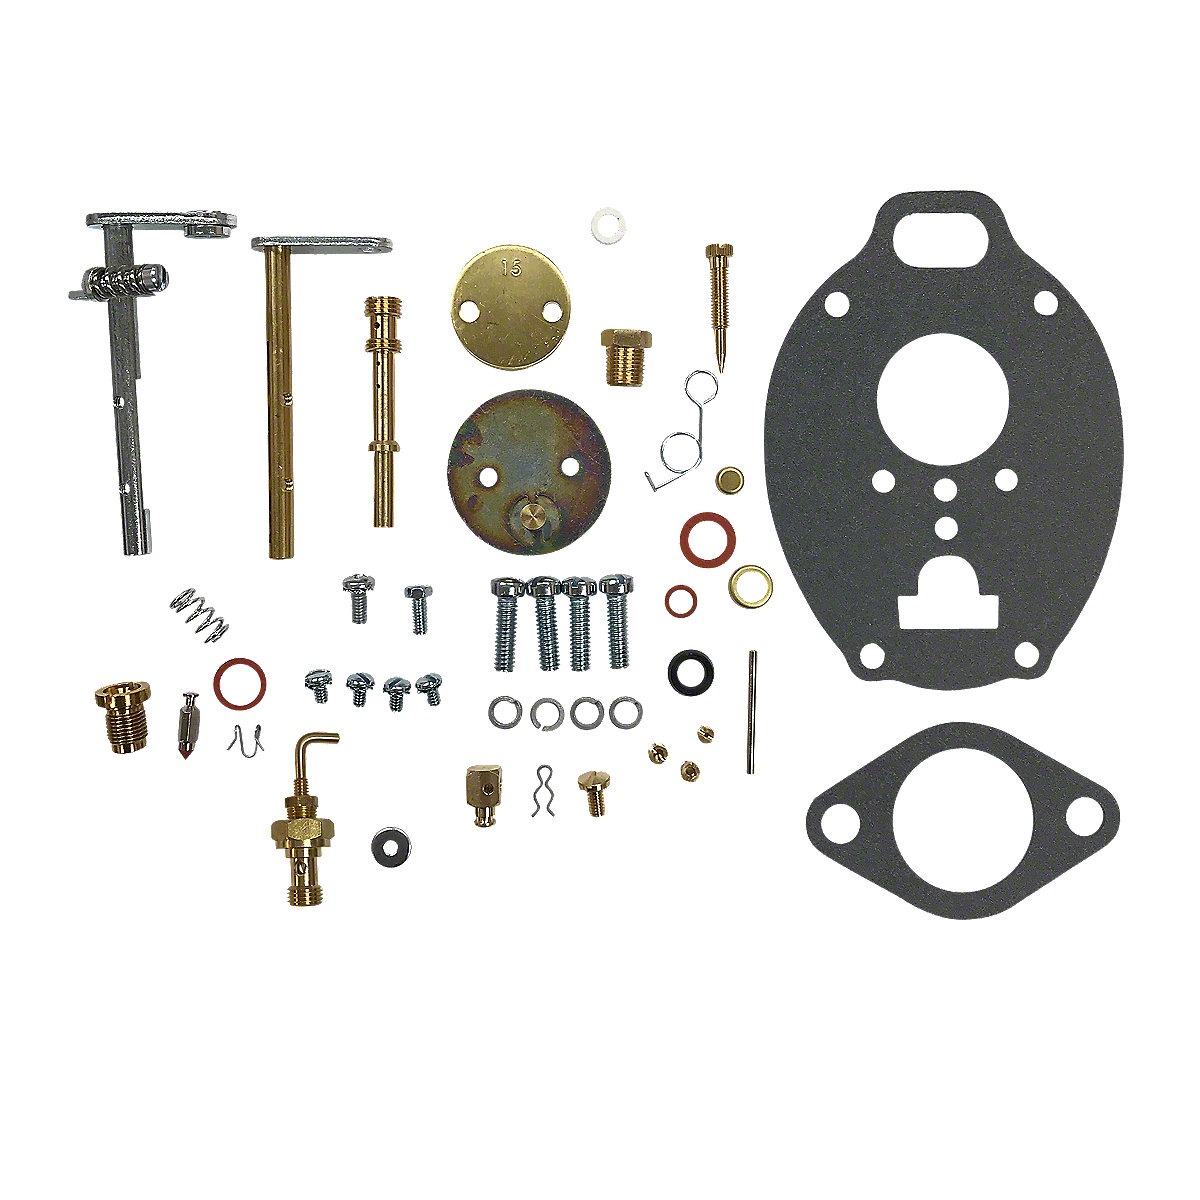 OLS4050 Premium Carburetor Repair Kit